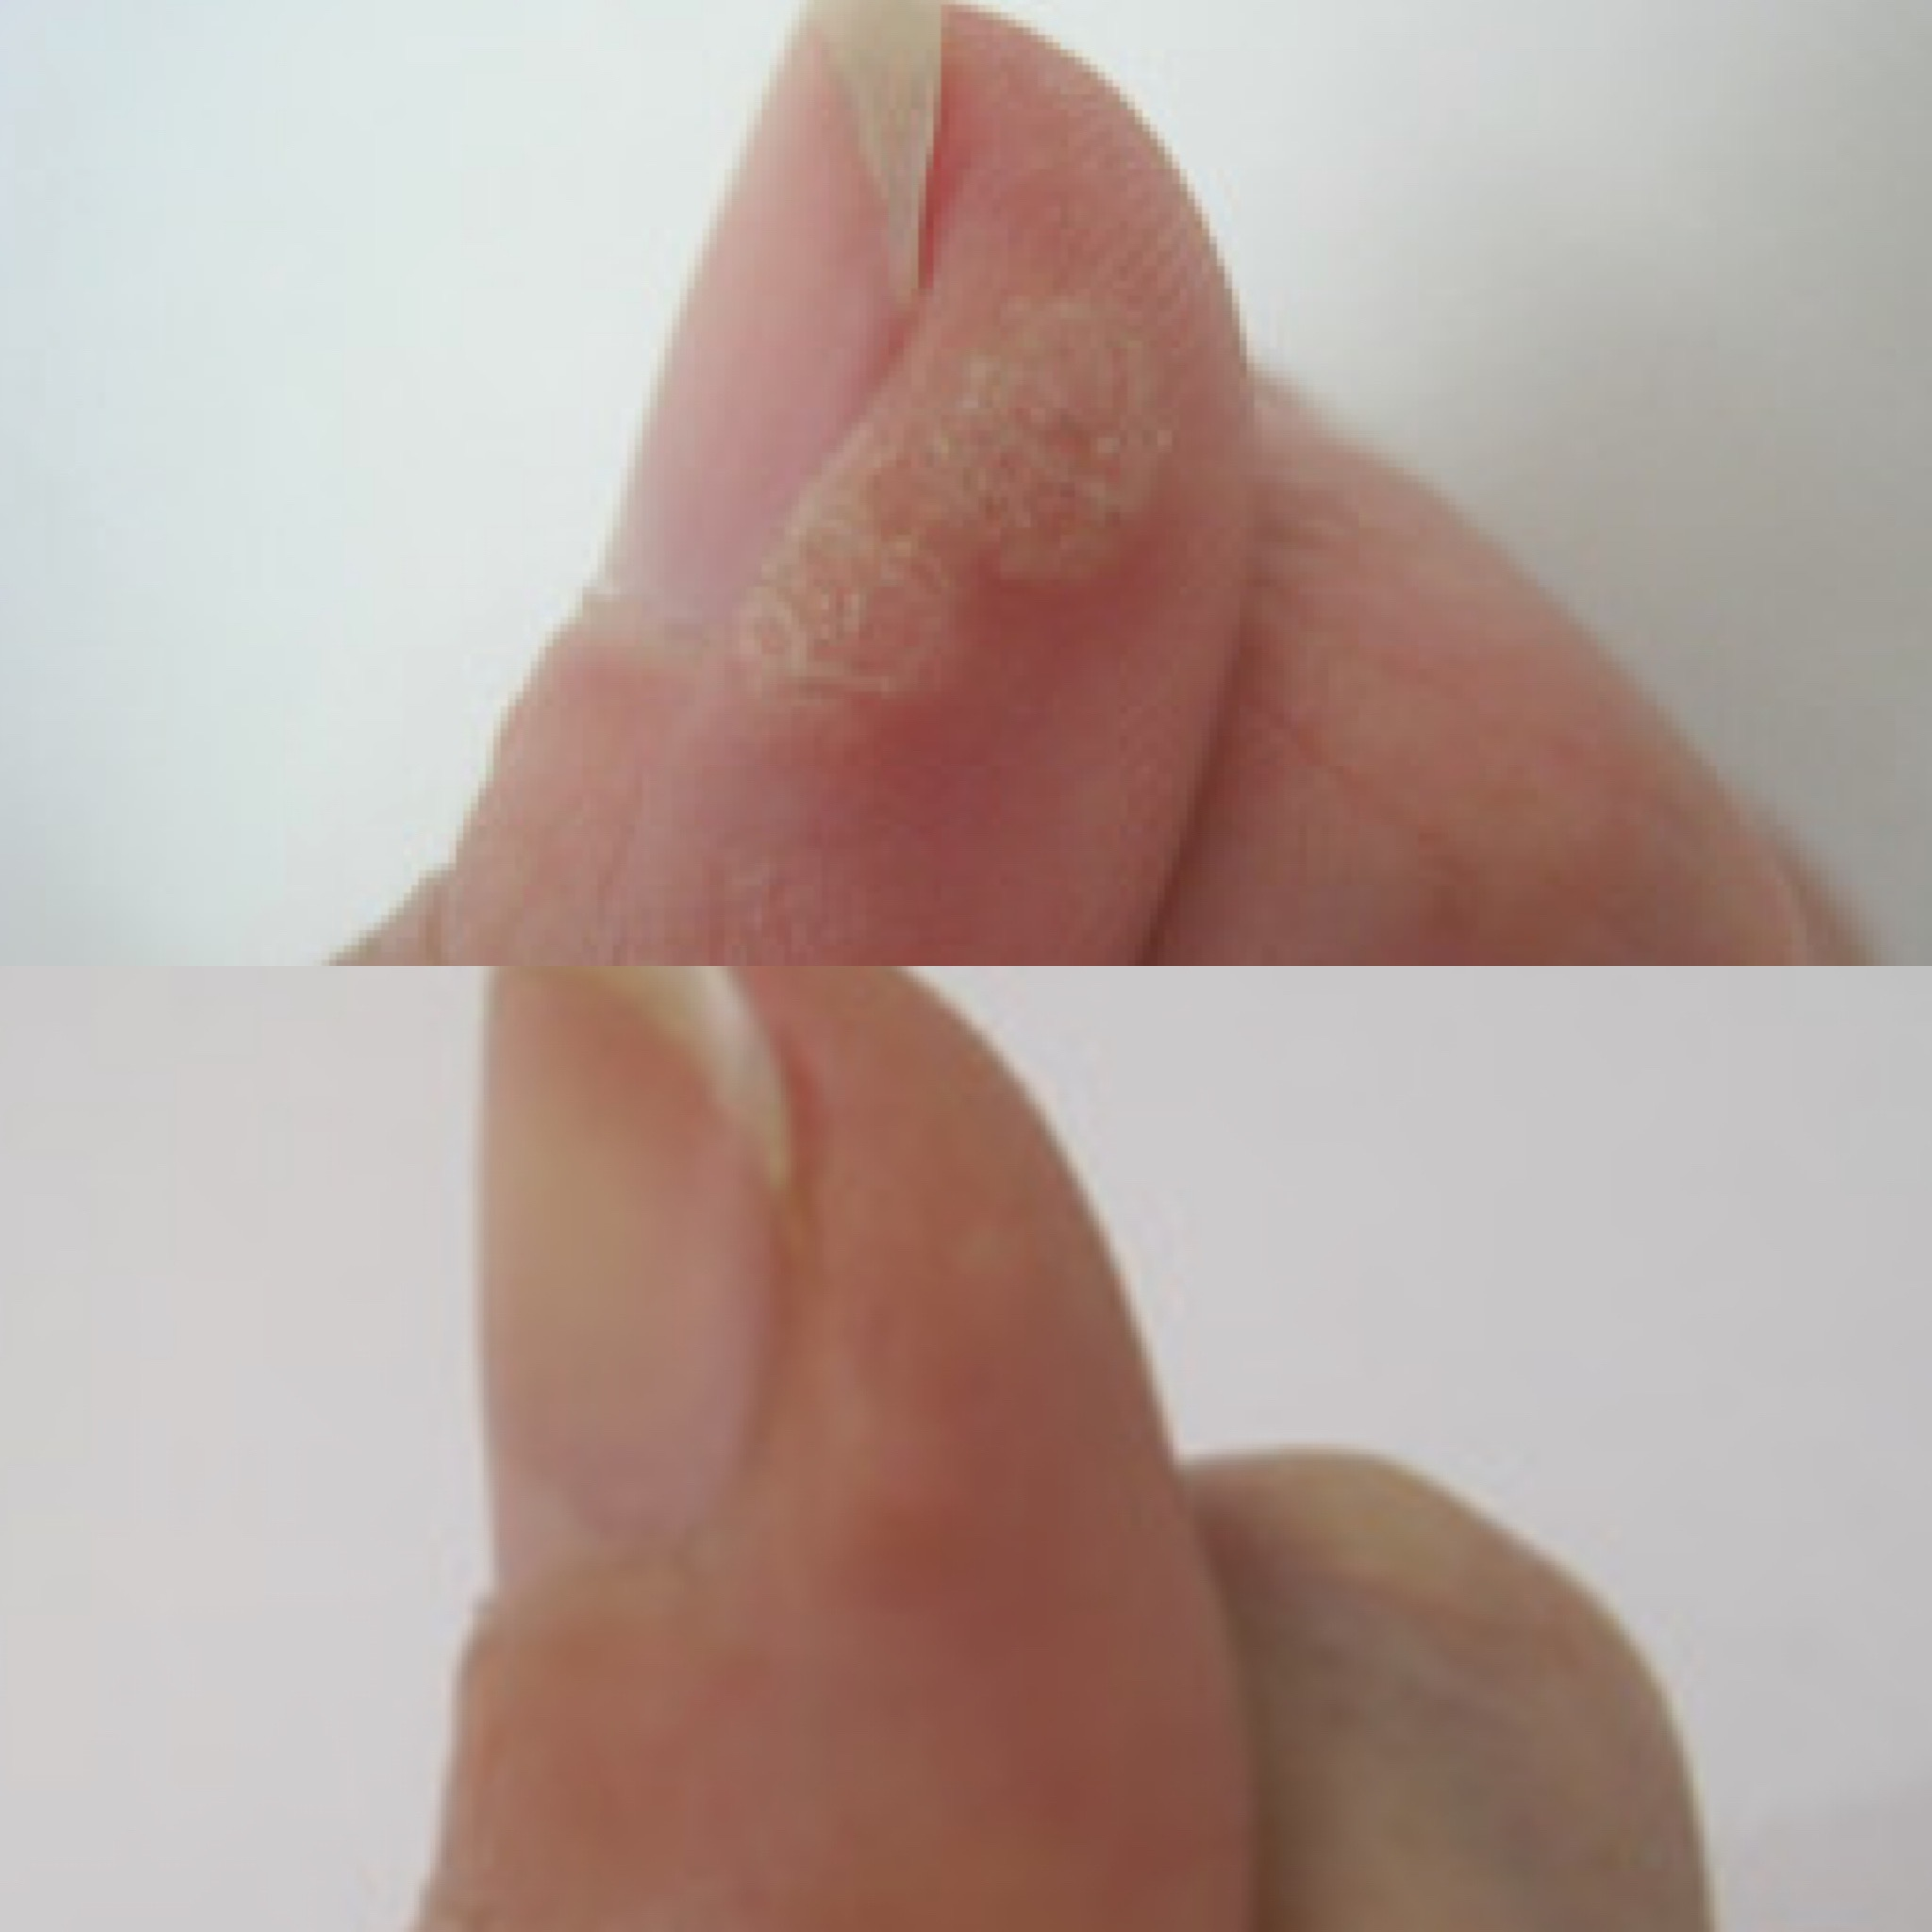 CryoPen Wart Removal